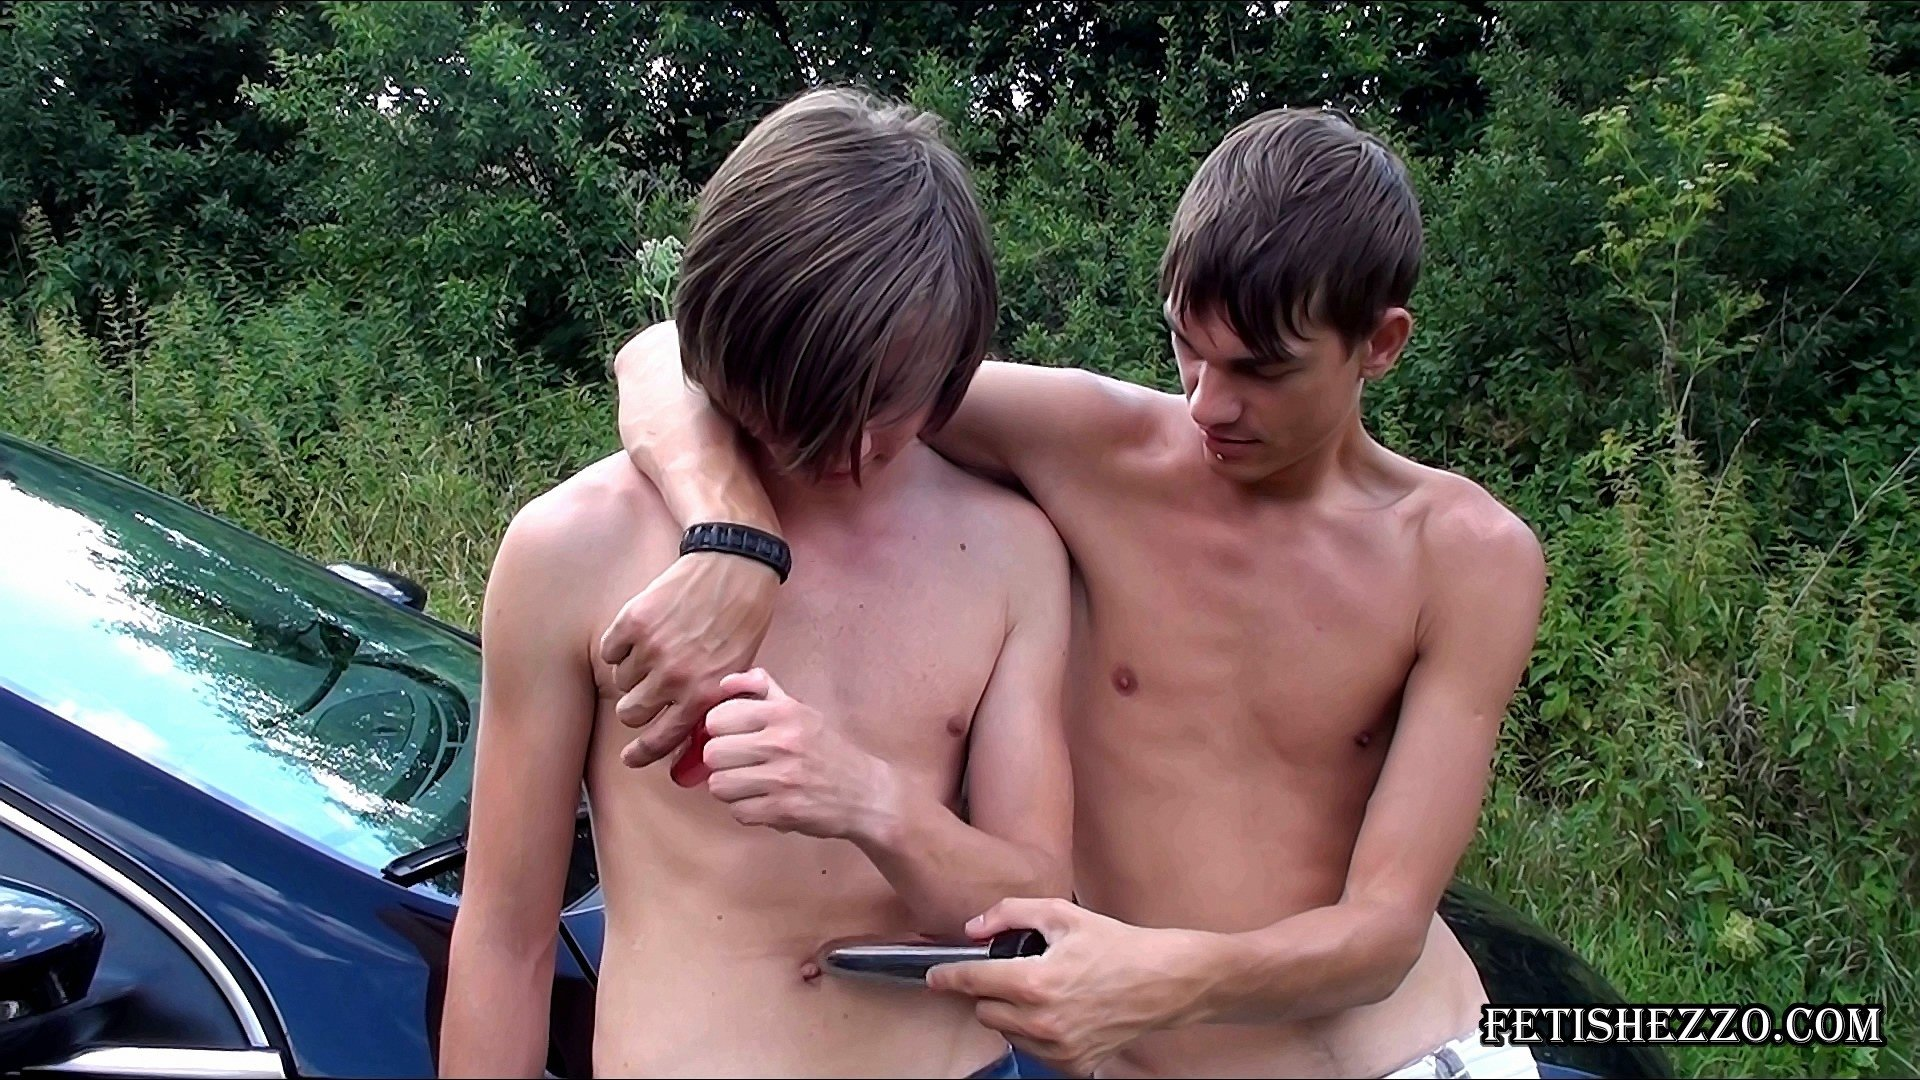 image Gay boy teen ass download xxx free